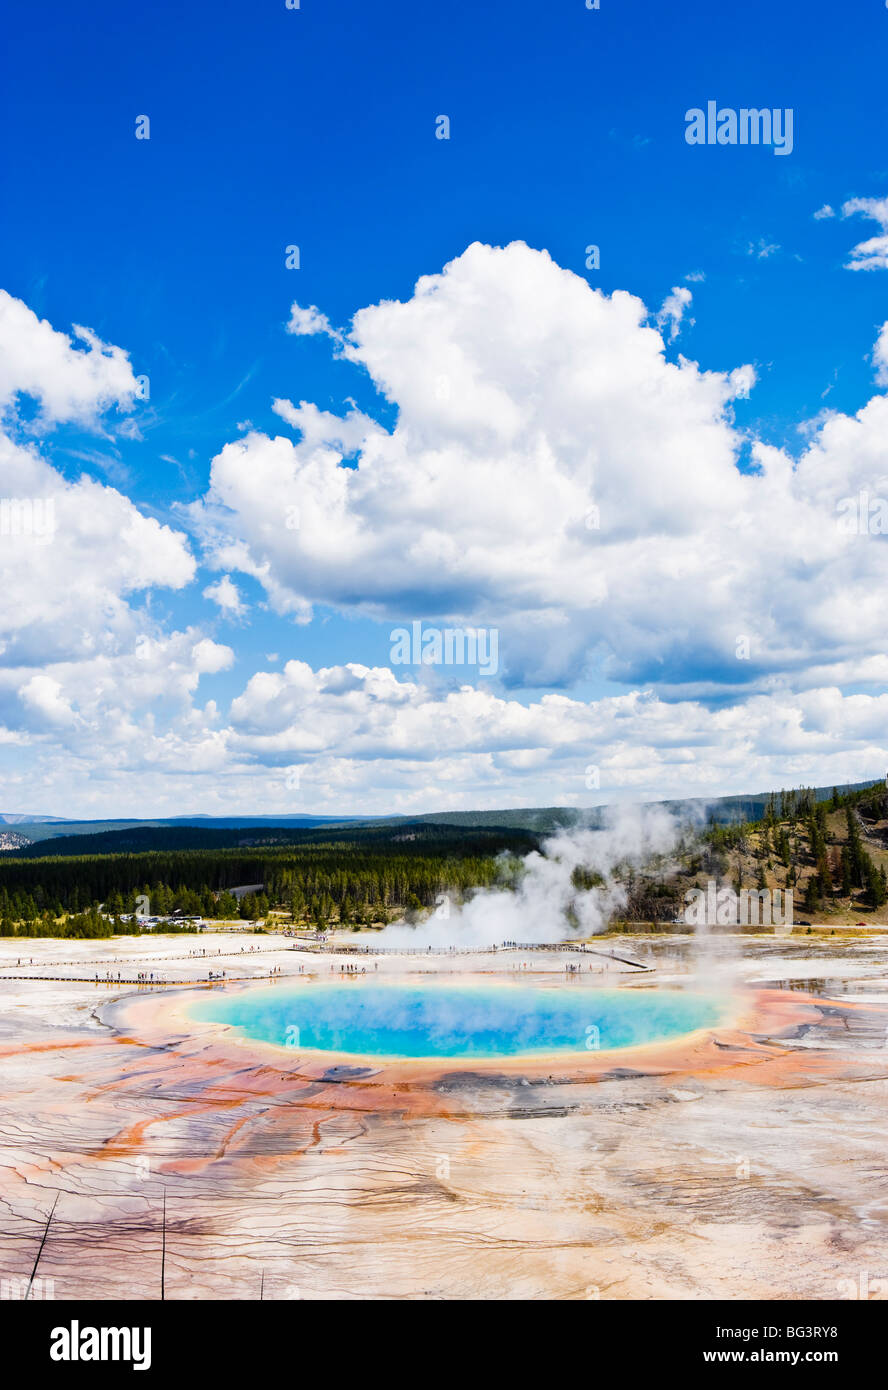 Grand Prismatic Spring in Yellowstone National Park, Wyoming, USA. - Stock Image